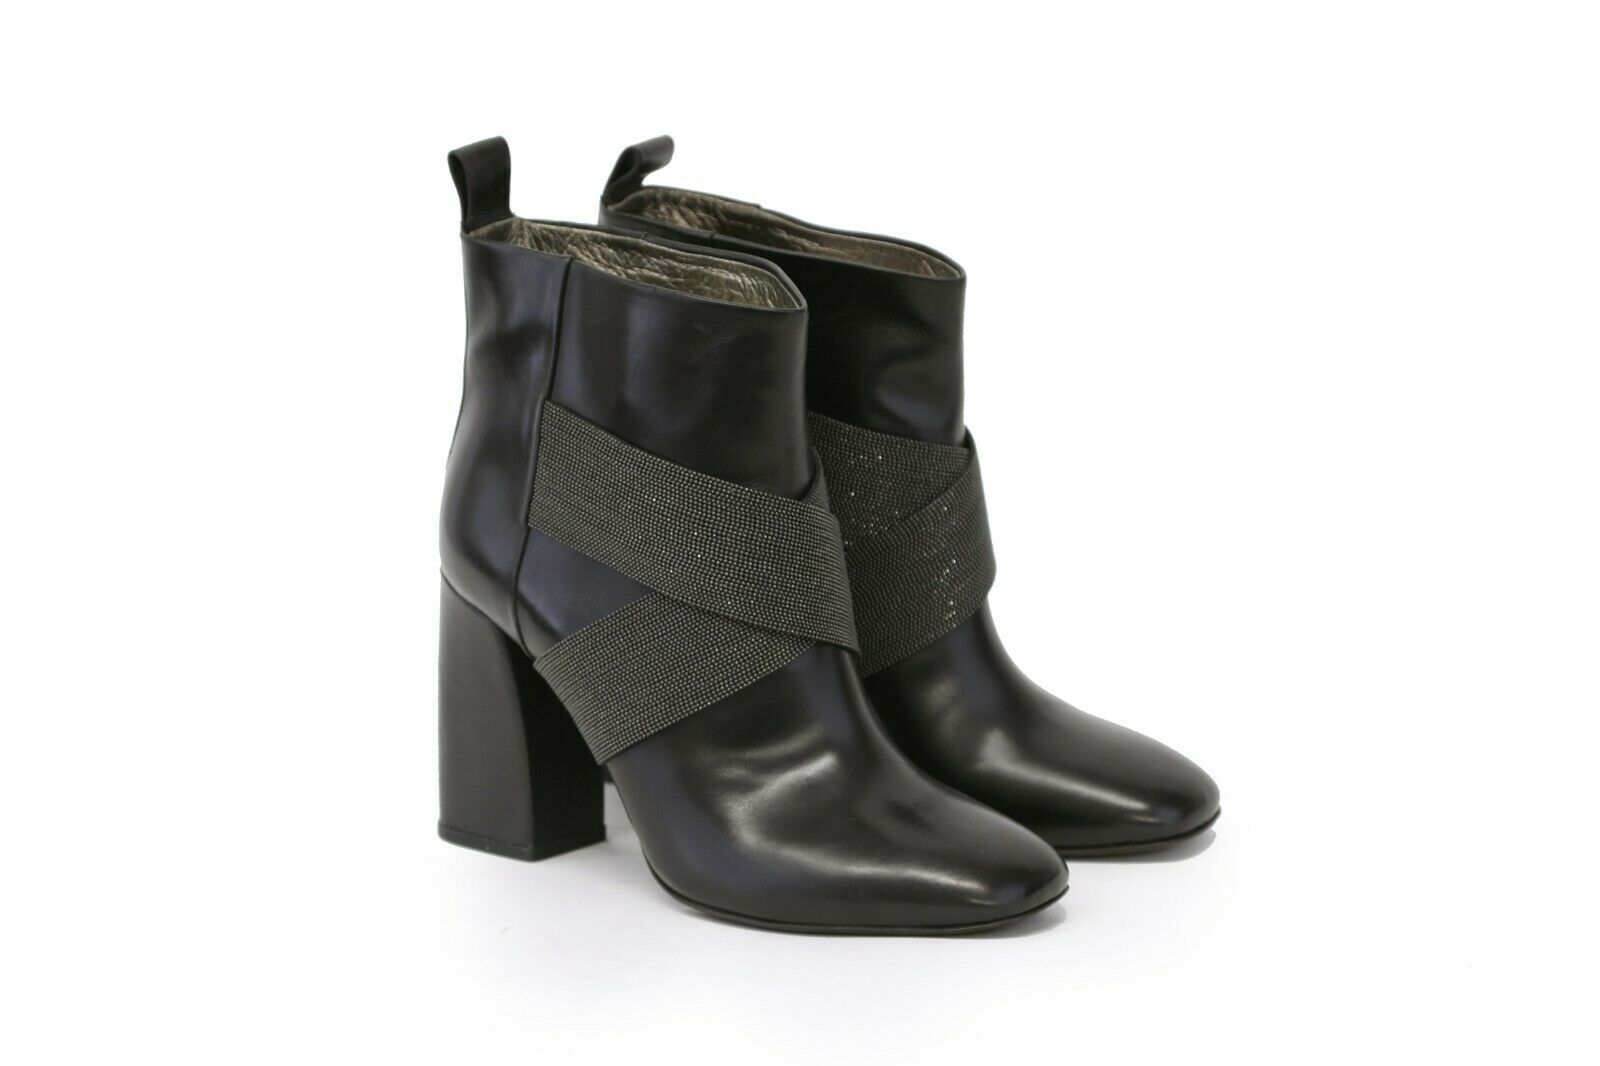 NWD  2895 Brunello Cucinelli 100%Leather X-Strap Beaded Ankle Booties37 7US A191